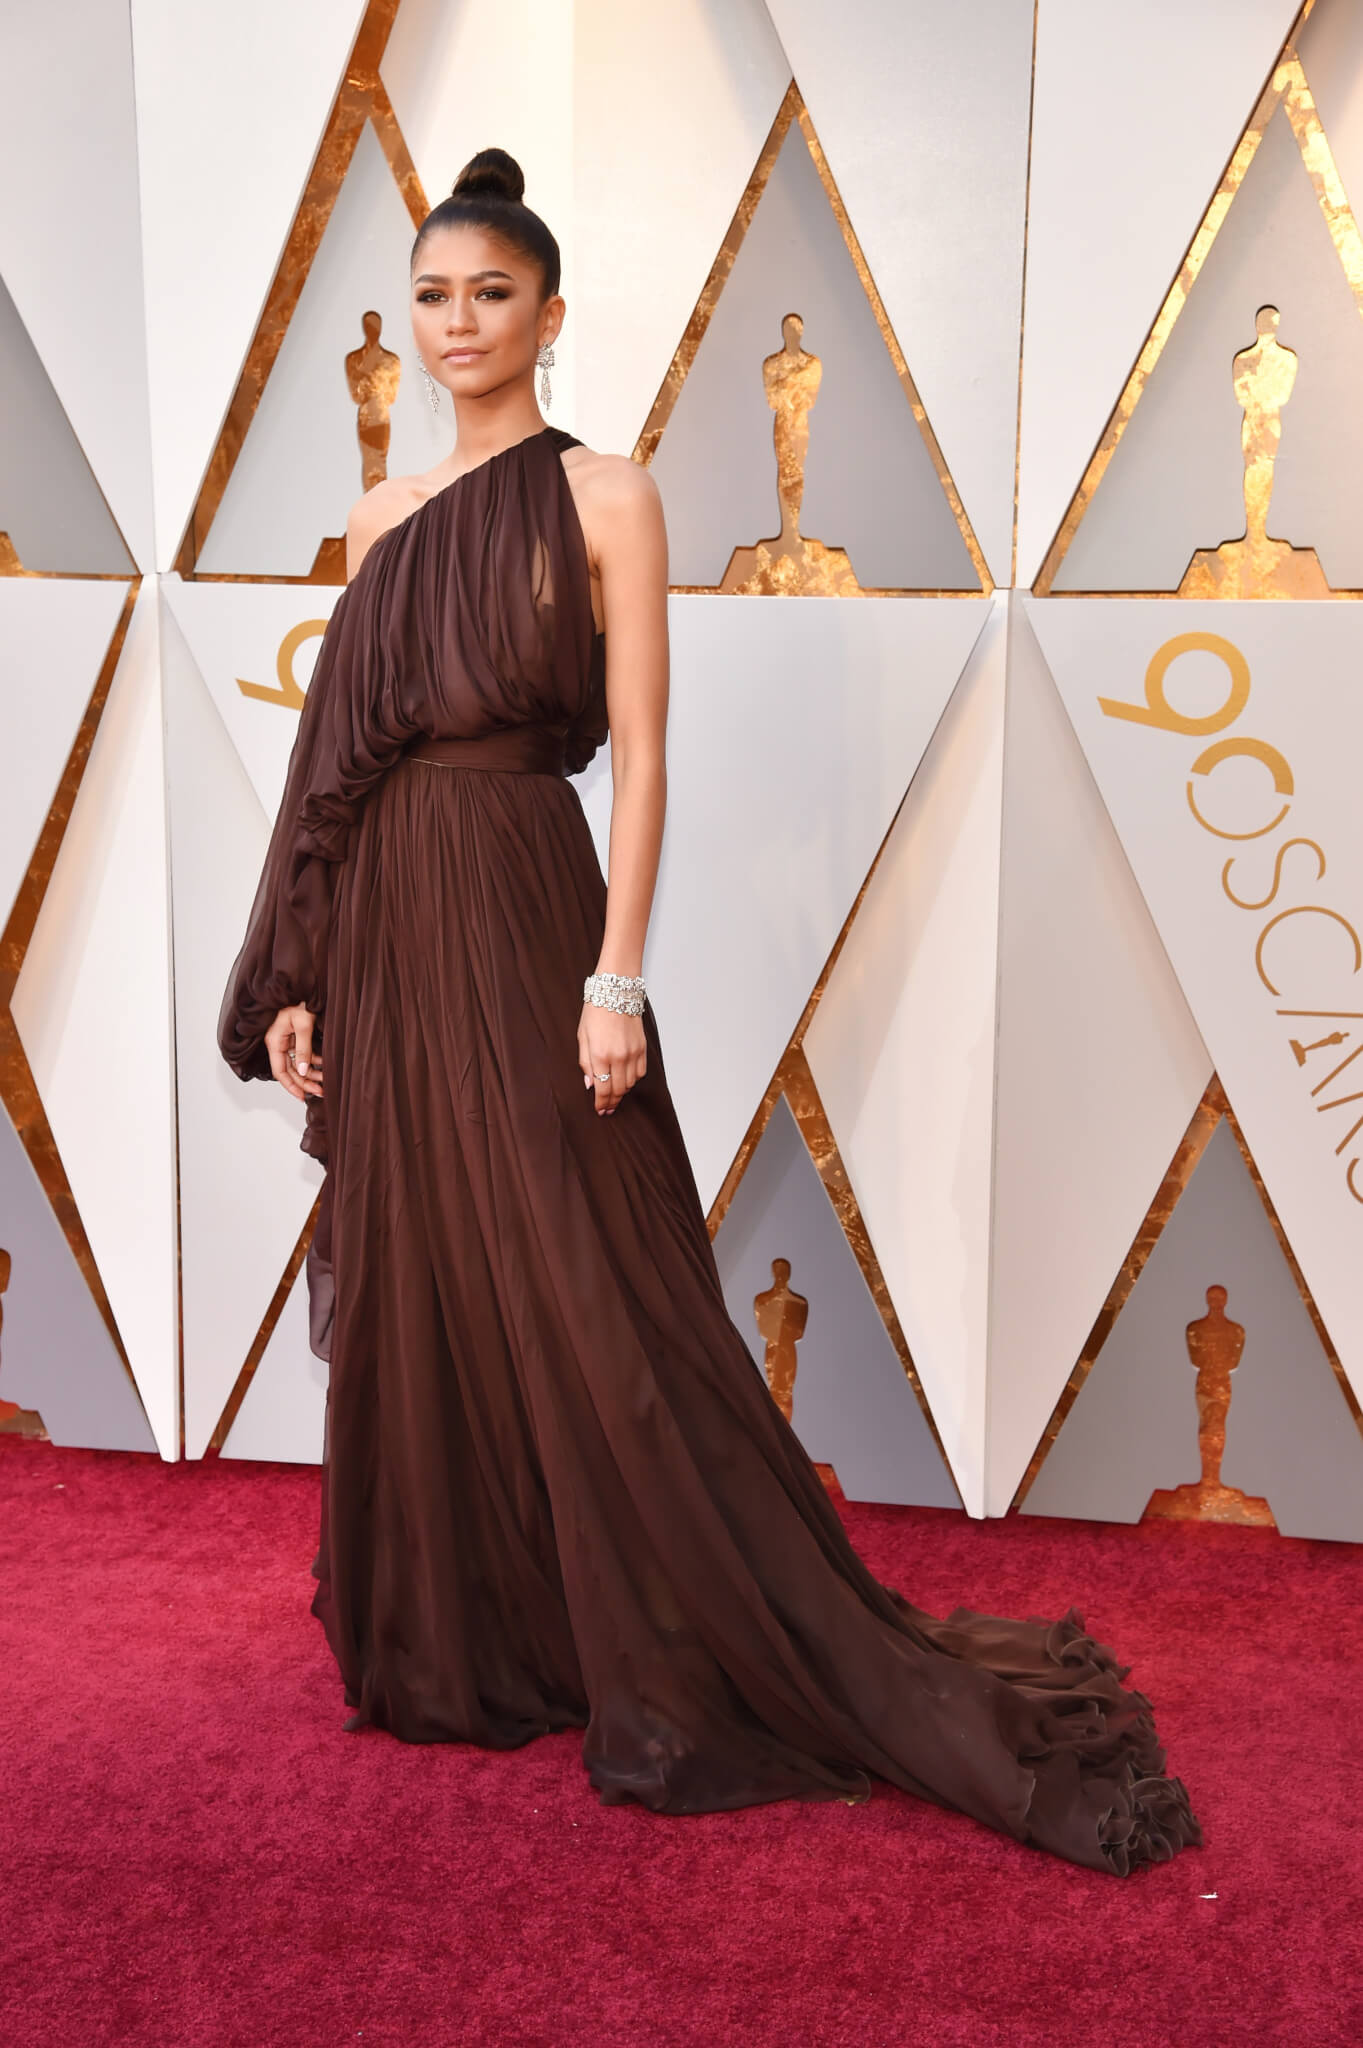 Zendaya. Best dressed at 2018 Oscars